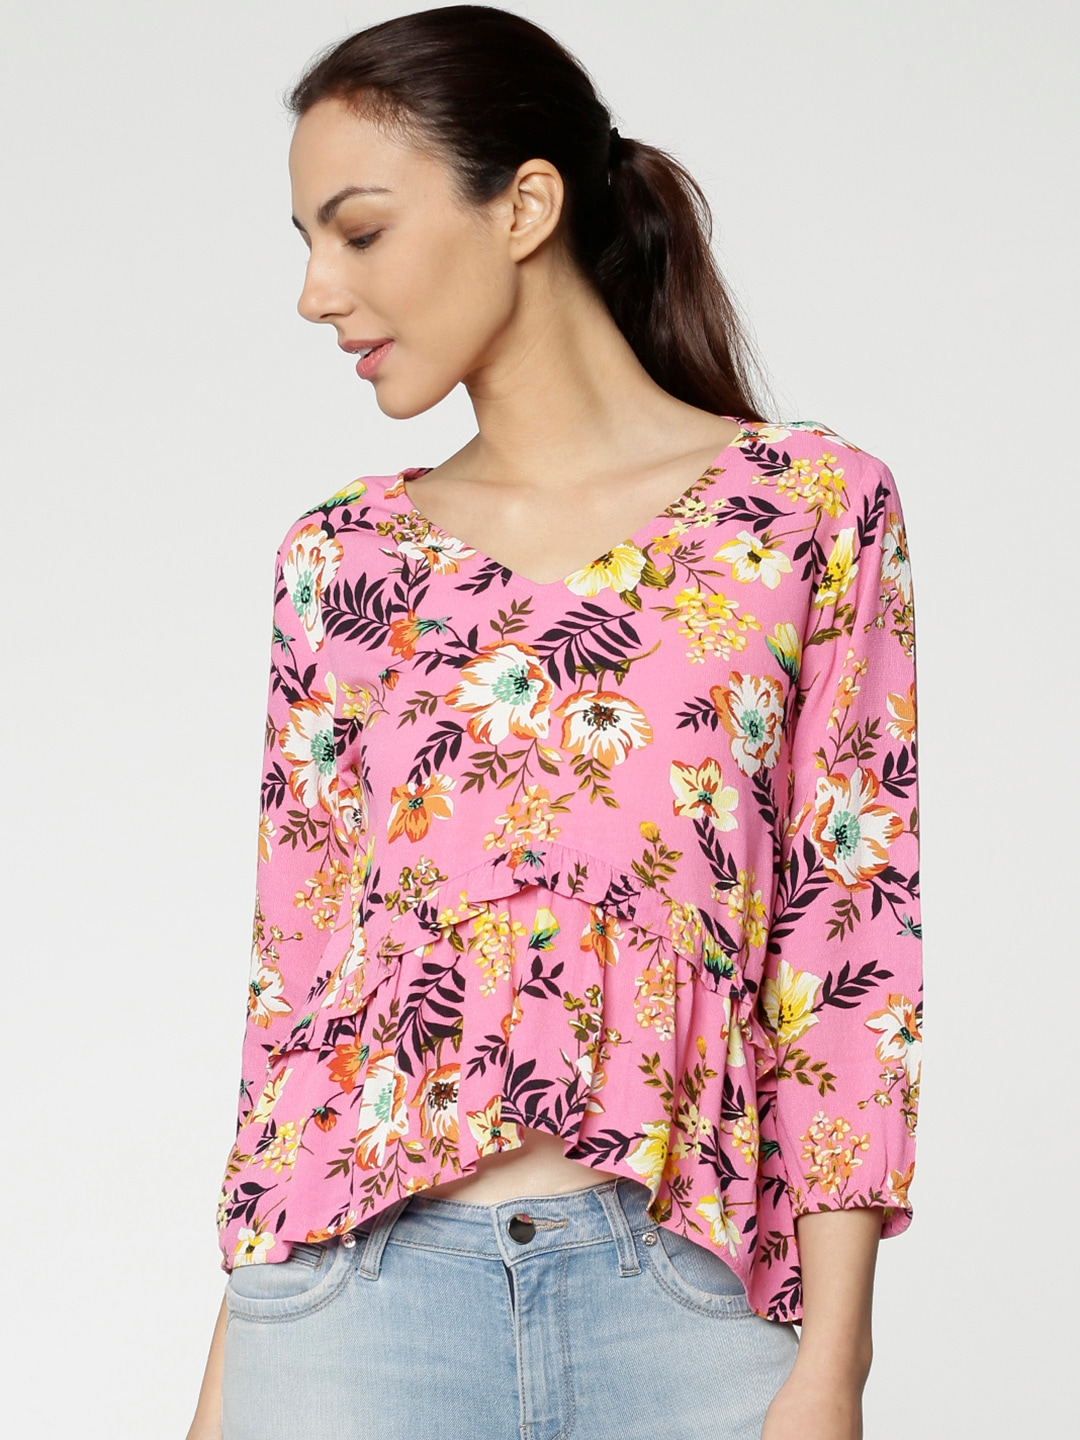 new style bf1ff b4d63 Women Tops 2 Top Shop Fs - Buy Women Tops 2 Top Shop Fs online in India